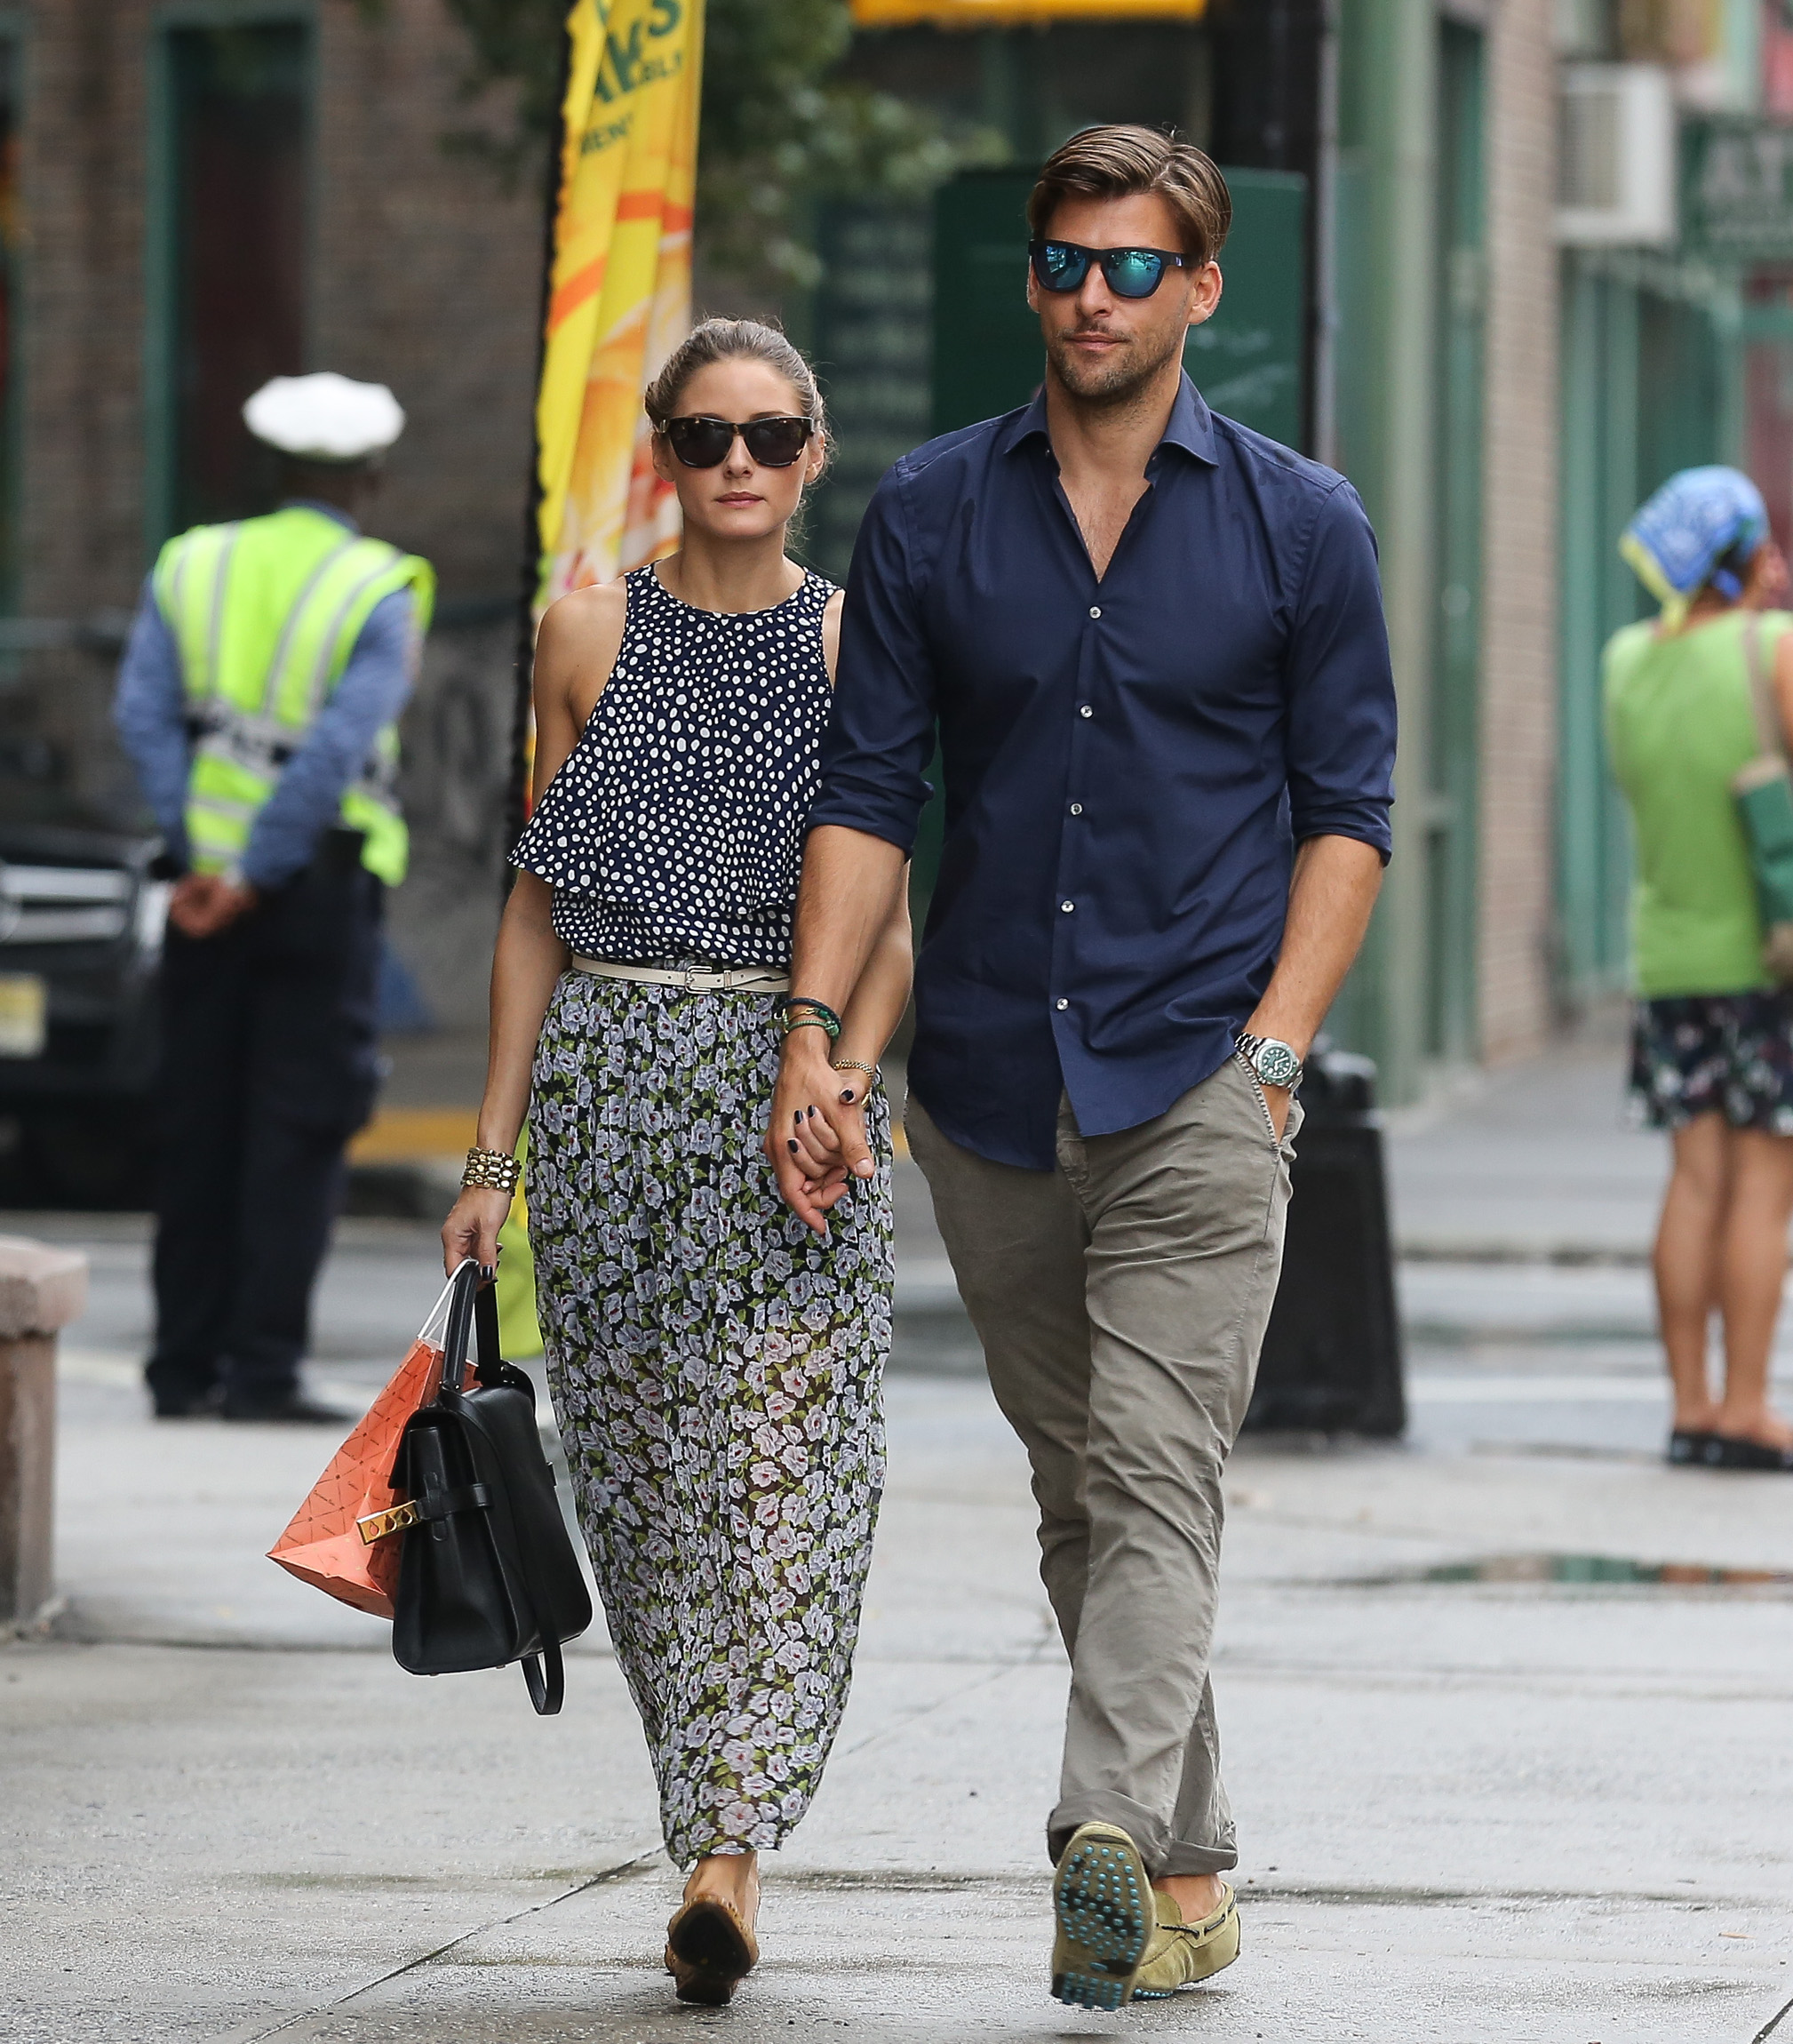 Olivia Palermo and boyfriend Johannes Huebl seen out and about in West Village, New York City, USA on September 12, 2013. <P> Pictured: Olivia Palermo and Johannes Huebl <P><B>Ref: SPL611174  120913  </B><BR/> Picture by: GSNY / Splash News<BR/> </P><P> <B>Splash News and Pictures</B><BR/> Los Angeles:310-821-2666<BR/> New York:212-619-2666<BR/> London:870-934-2666<BR/> <span id=